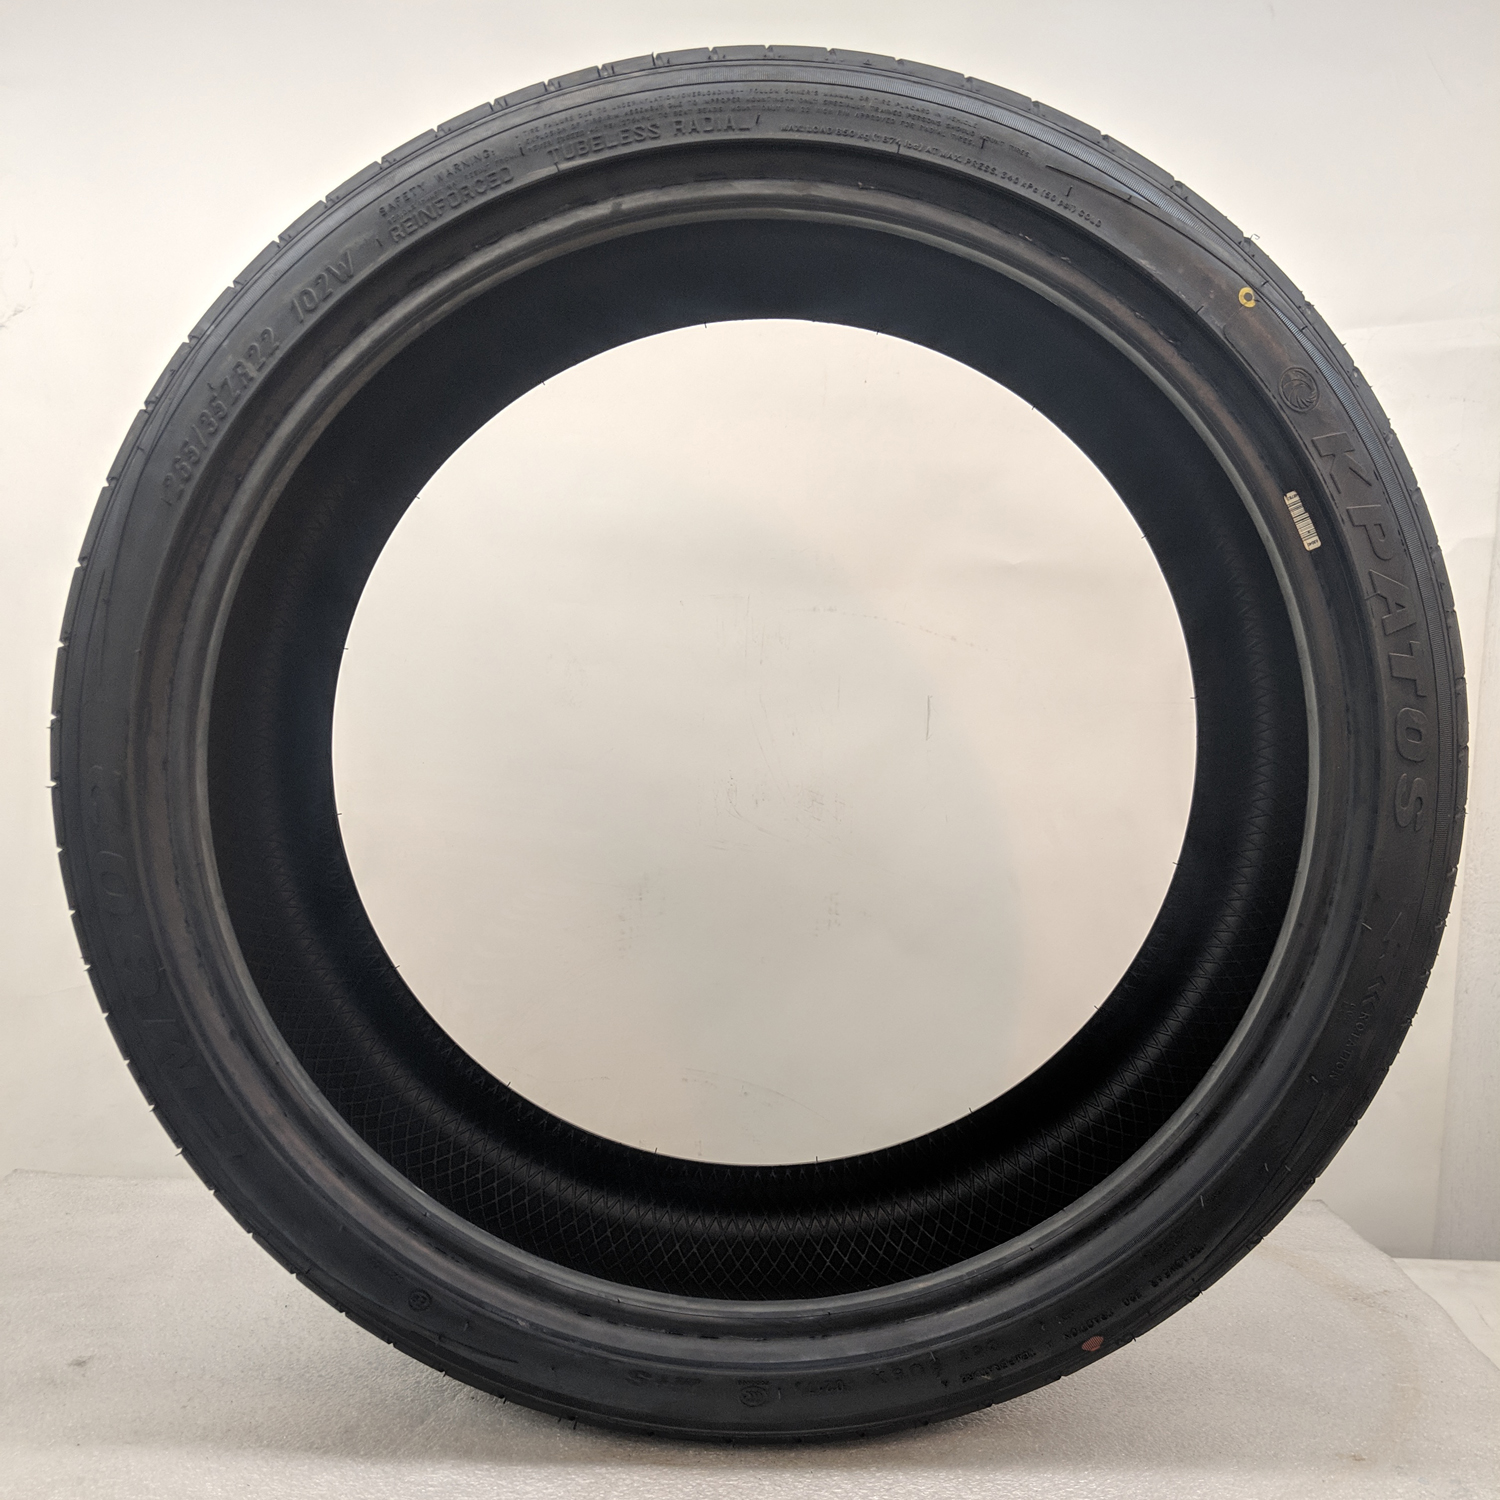 Kpatos Tires FM602 Passenger Performance Tire